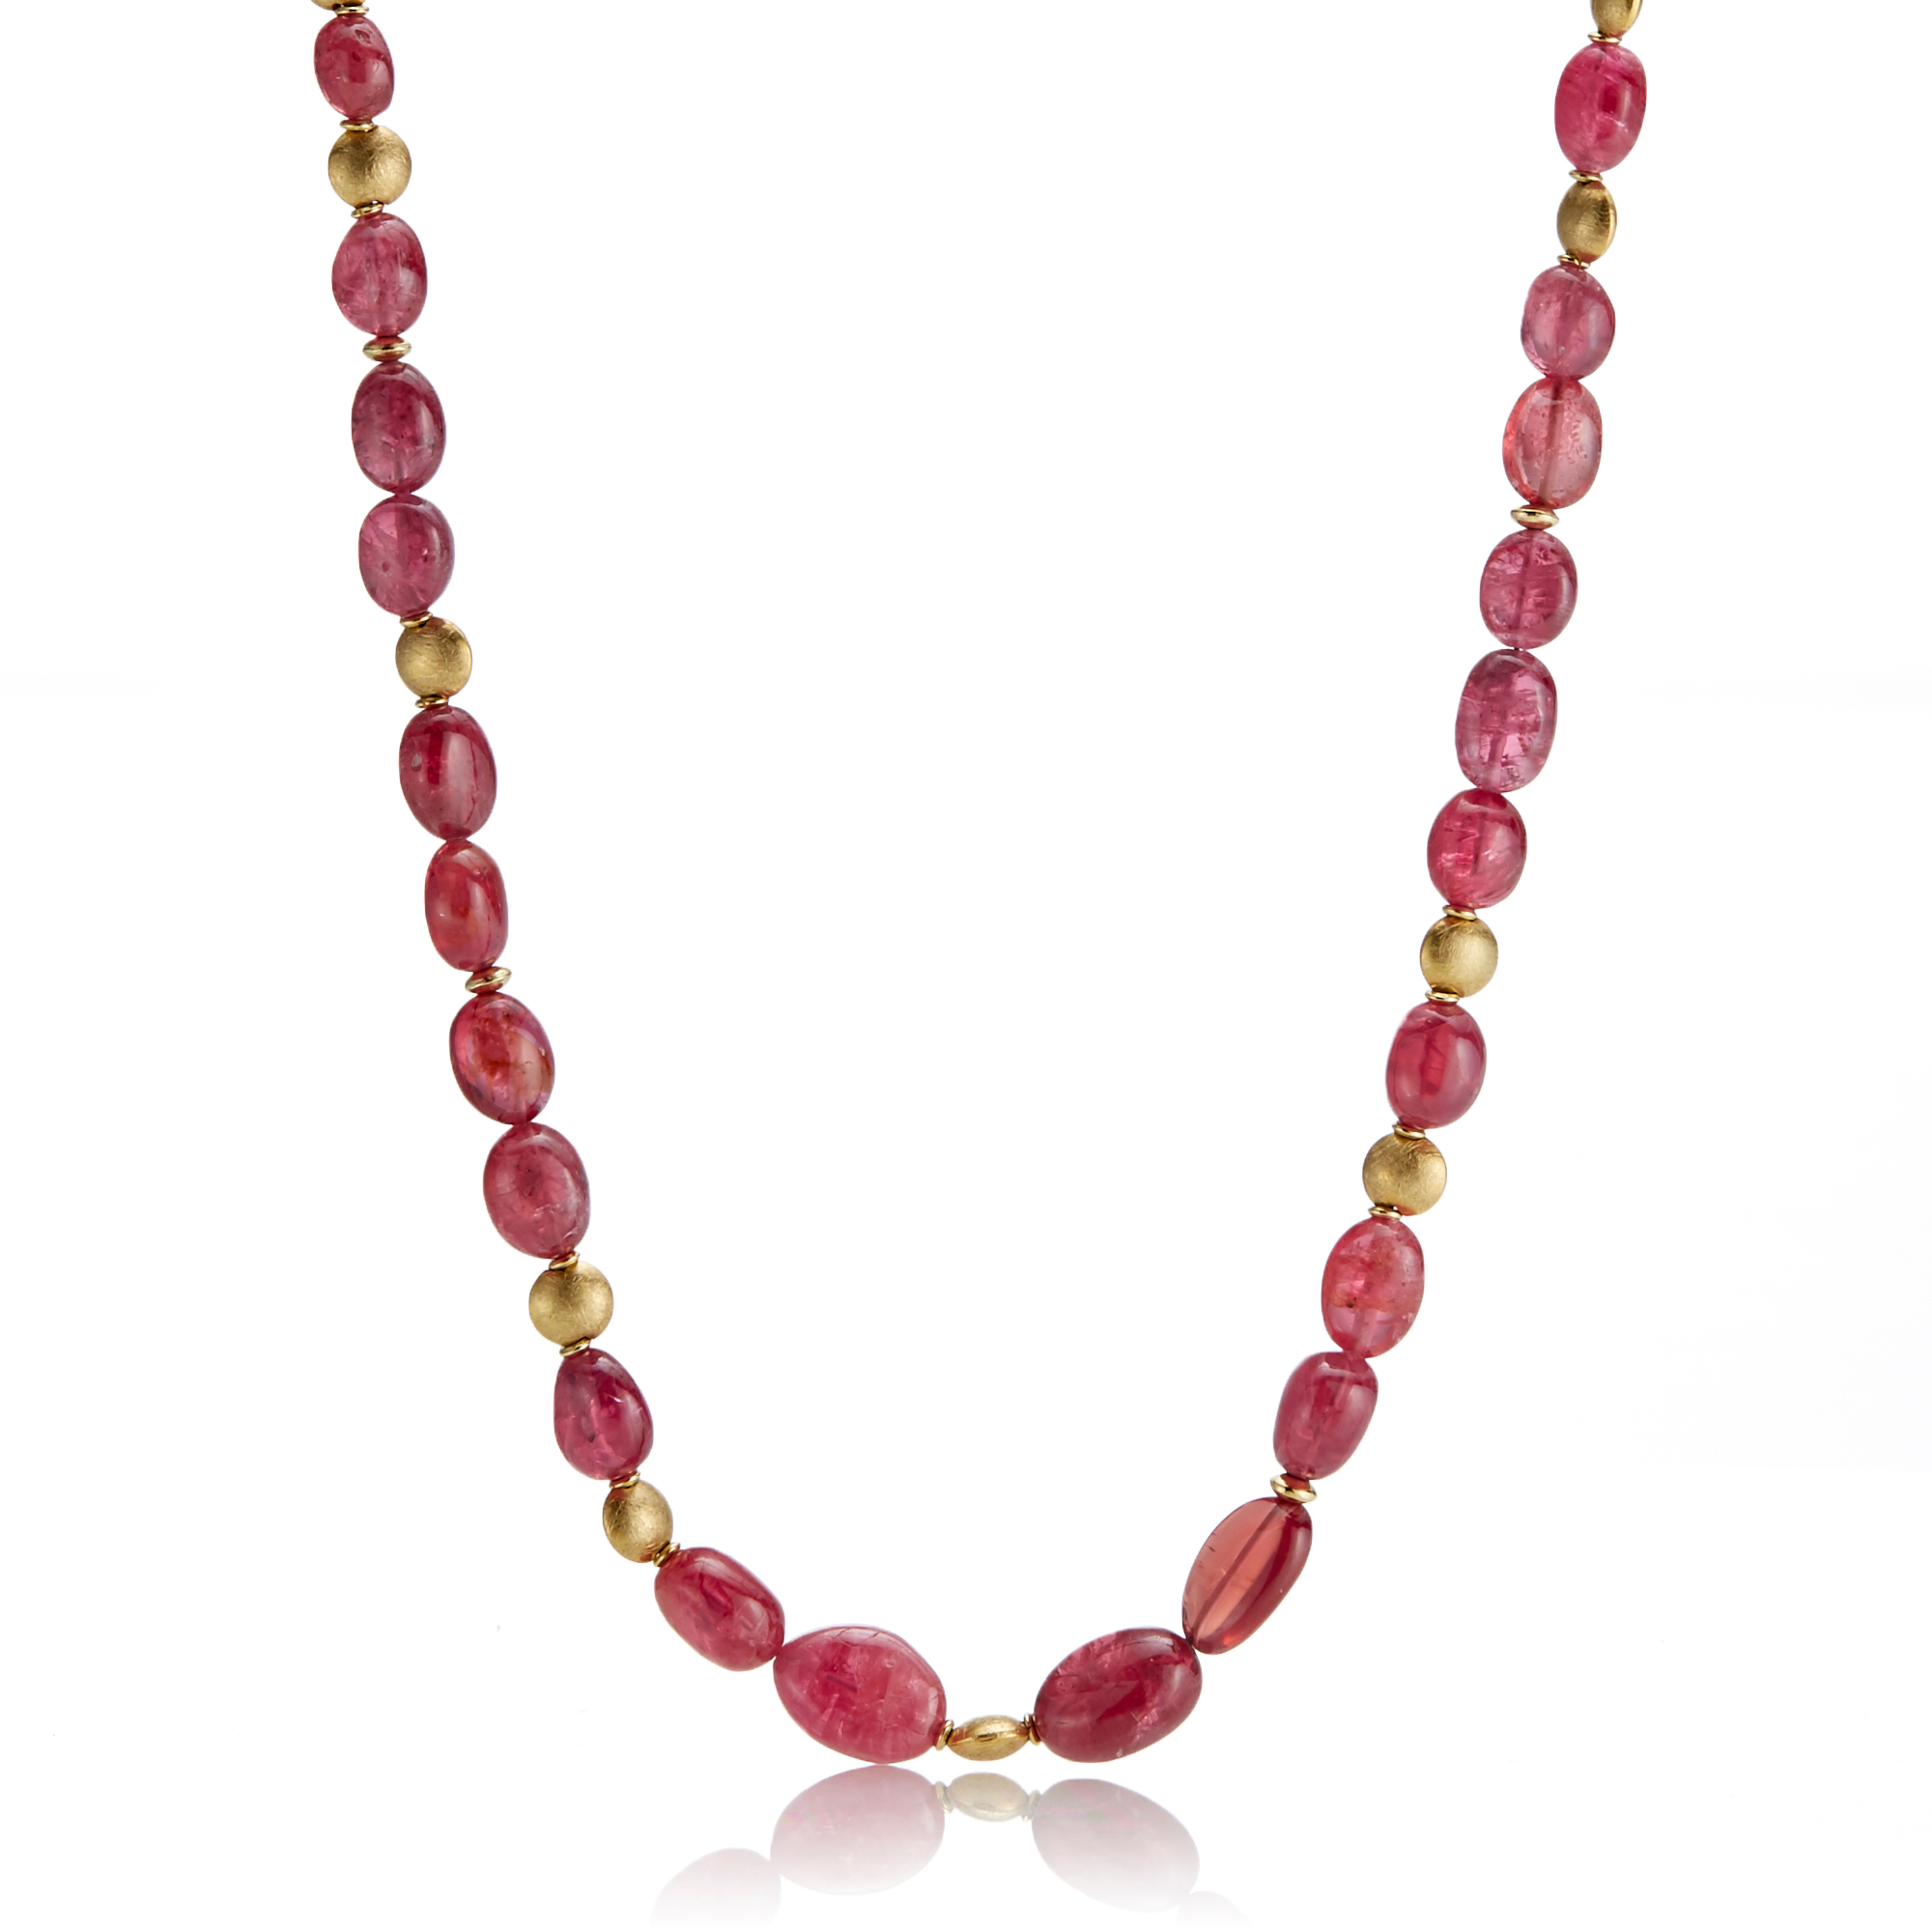 Barbara Heinrich Graduated Smooth Pink Spinel & Gold Spacer Necklace